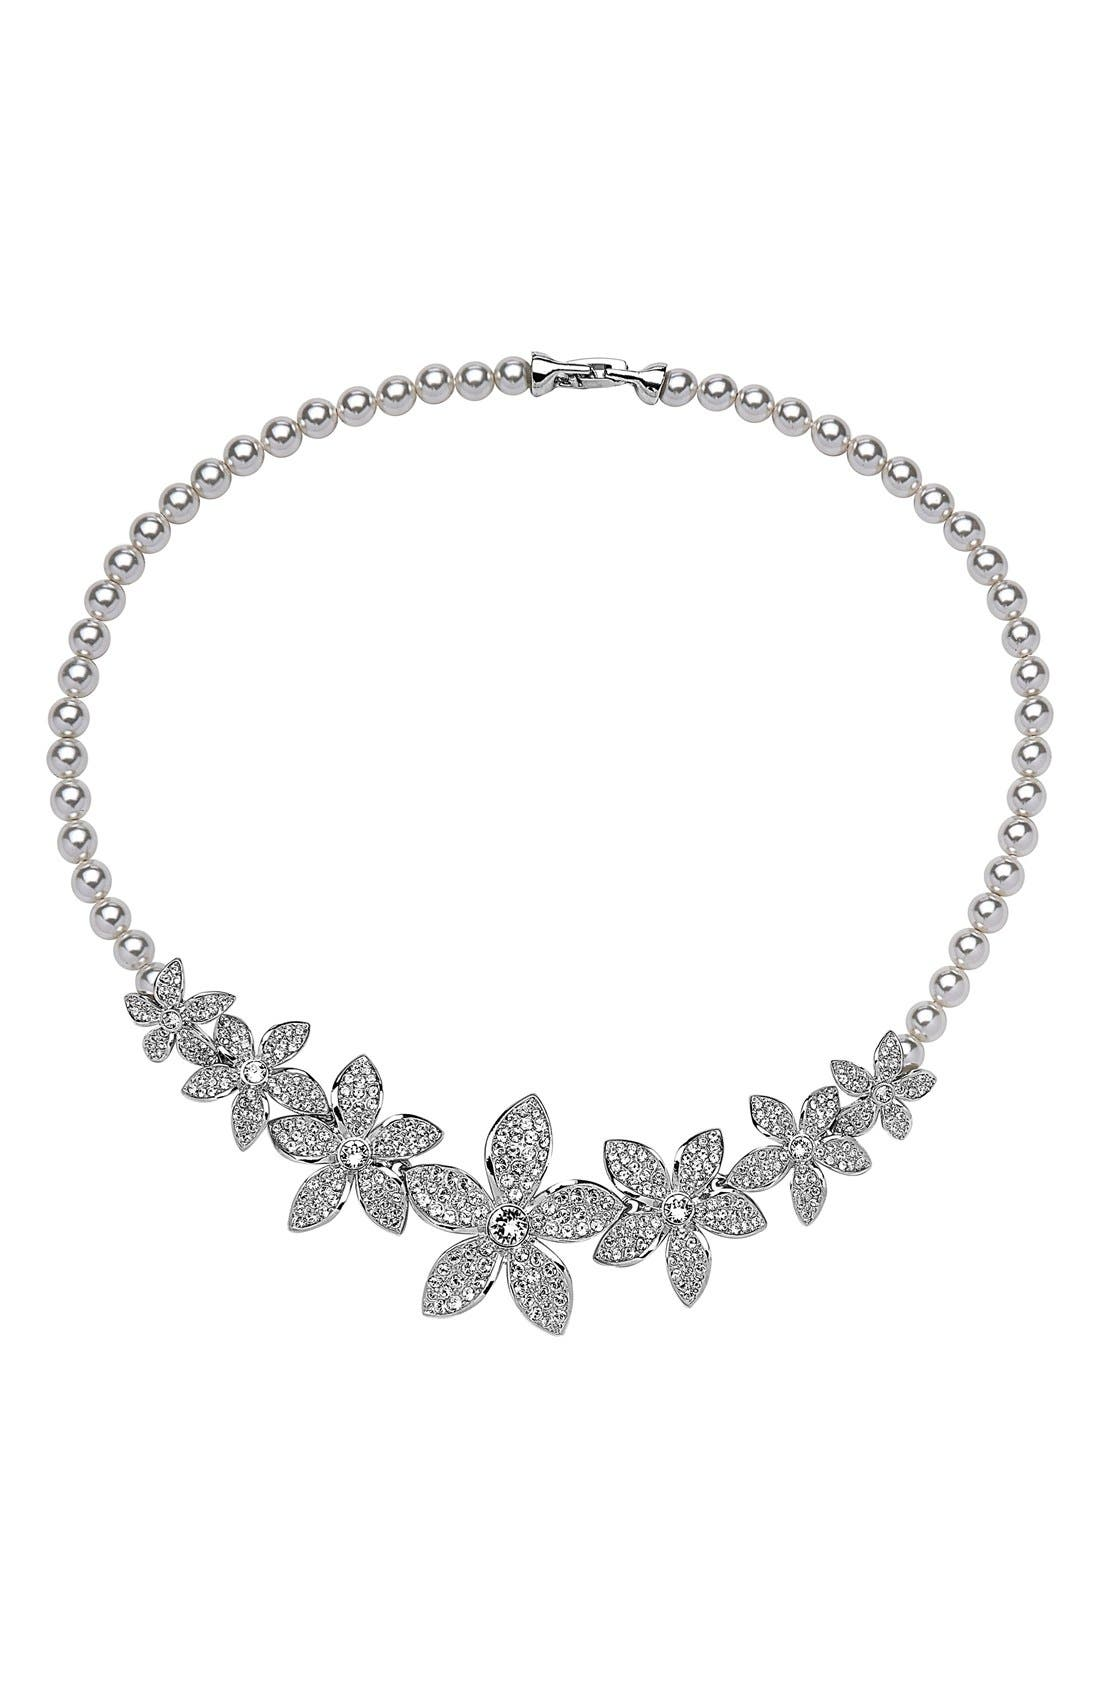 Swarovski Crystal & Faux Pearl Frontal Necklace,                             Main thumbnail 1, color,                             044